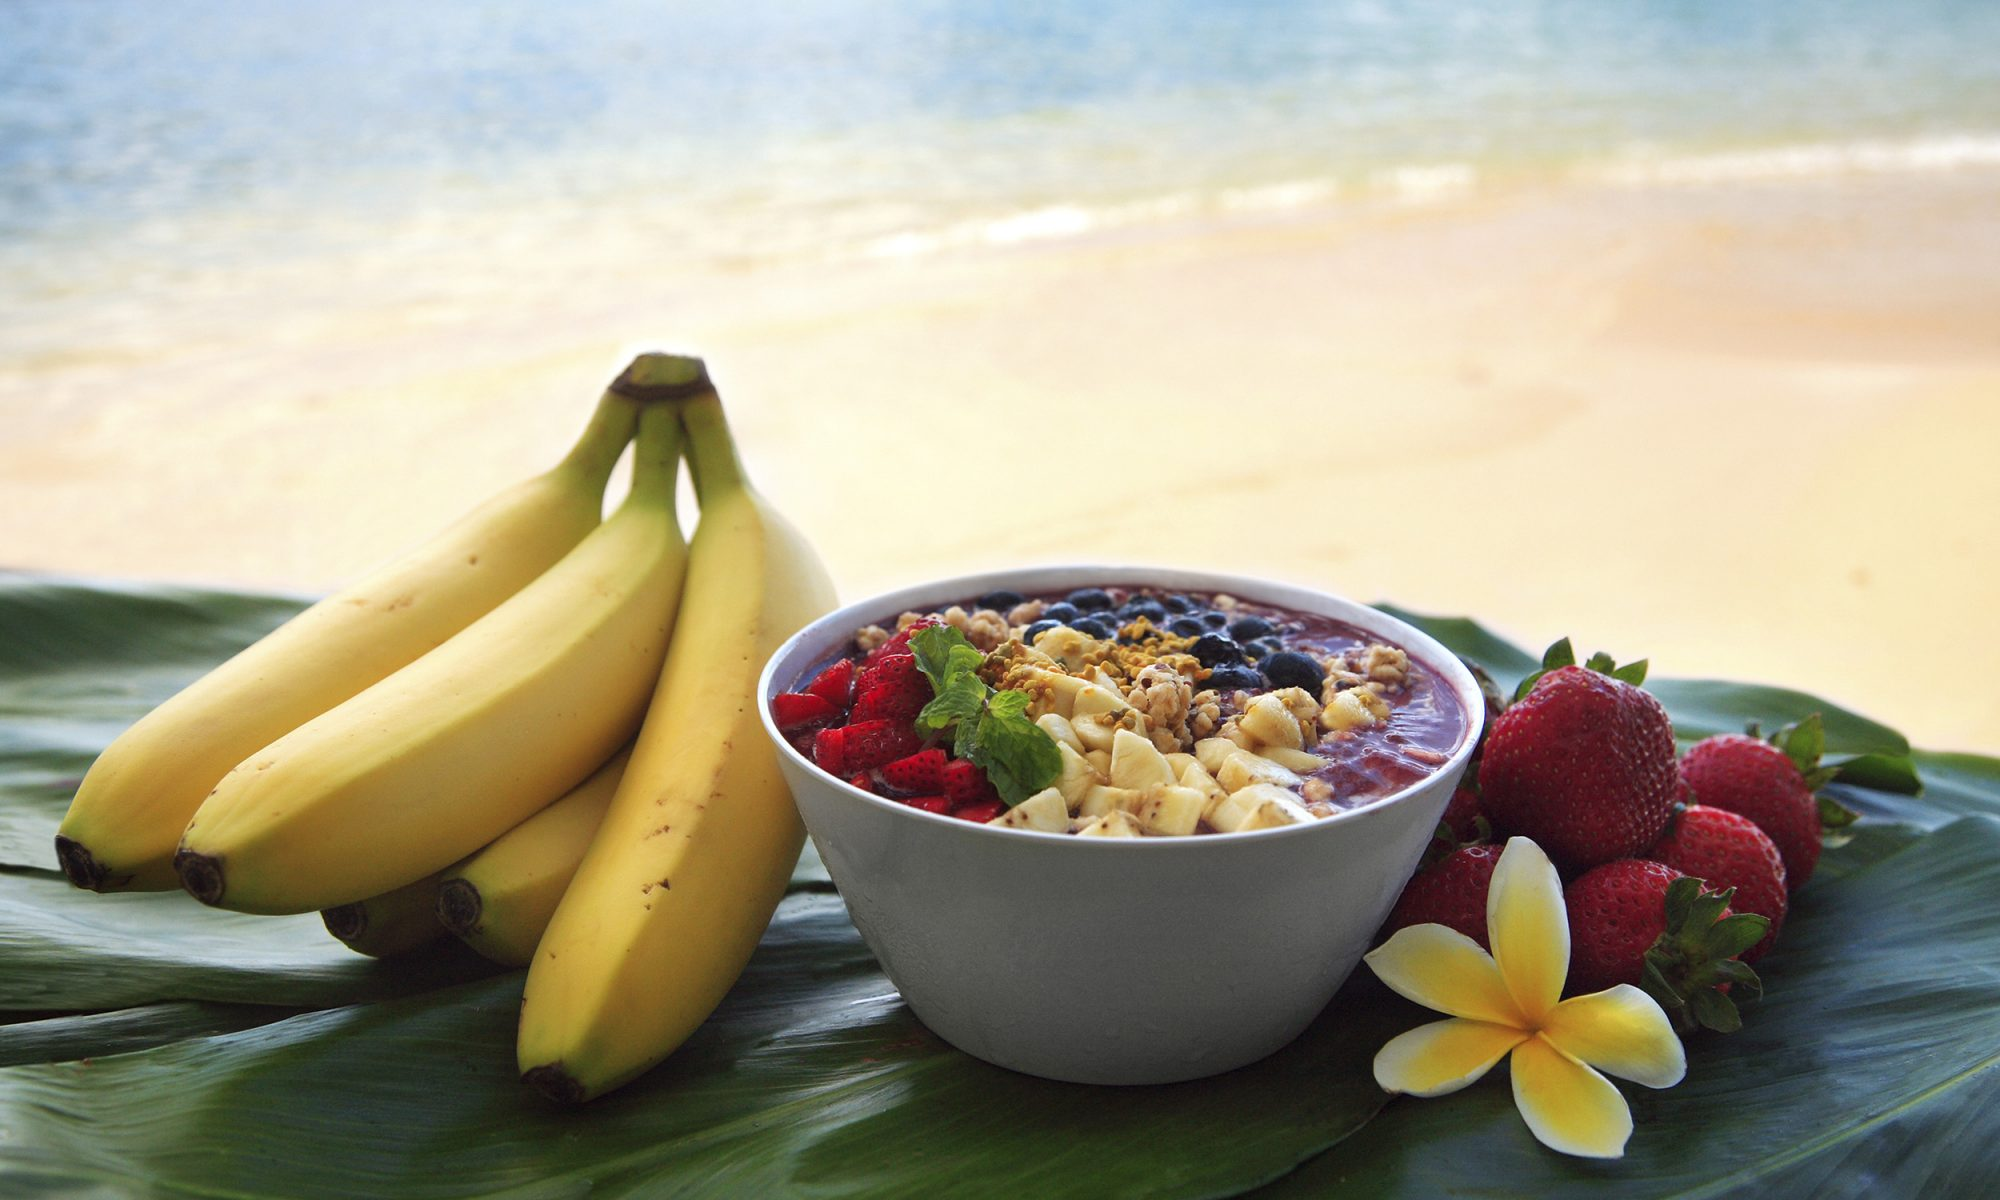 EC: Acai Recipes to Make While the Olympics Are Still On